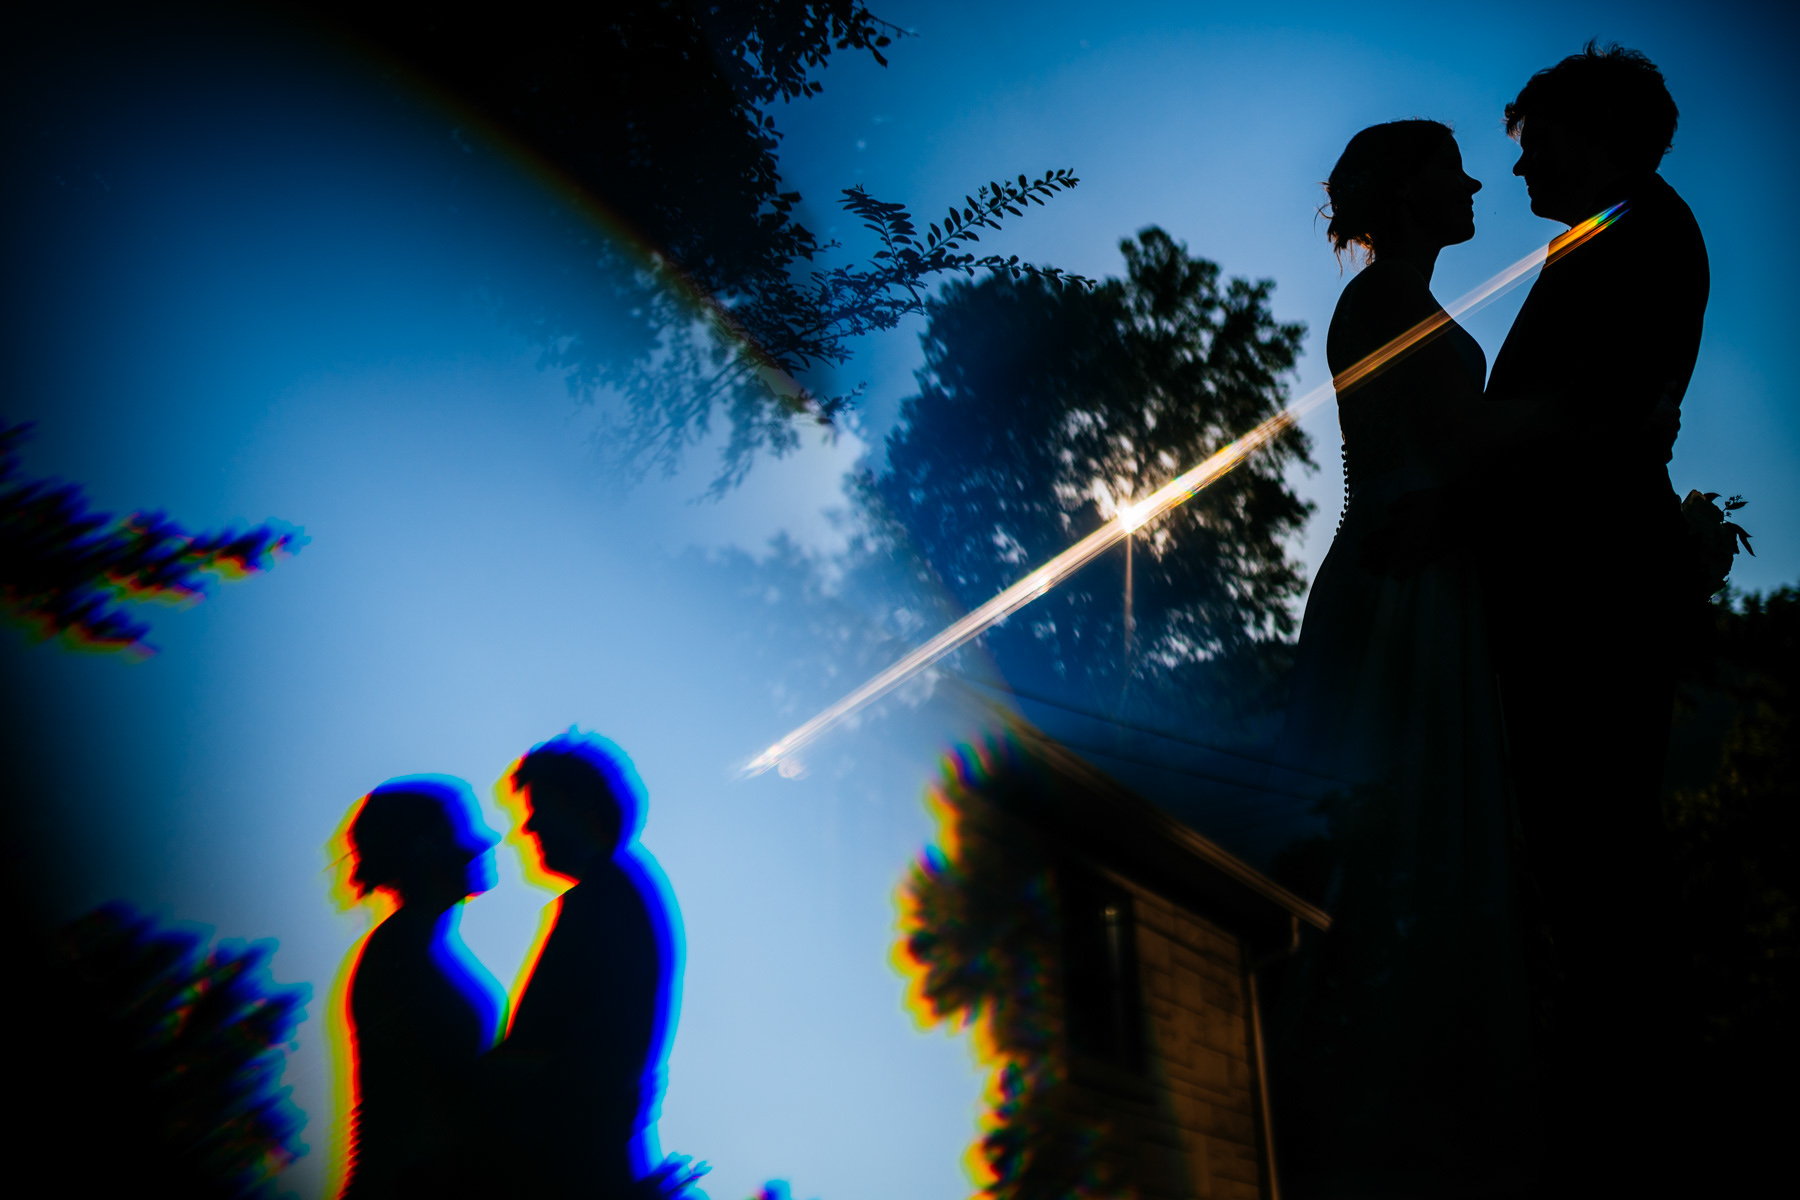 bride and groom silhouette reflection